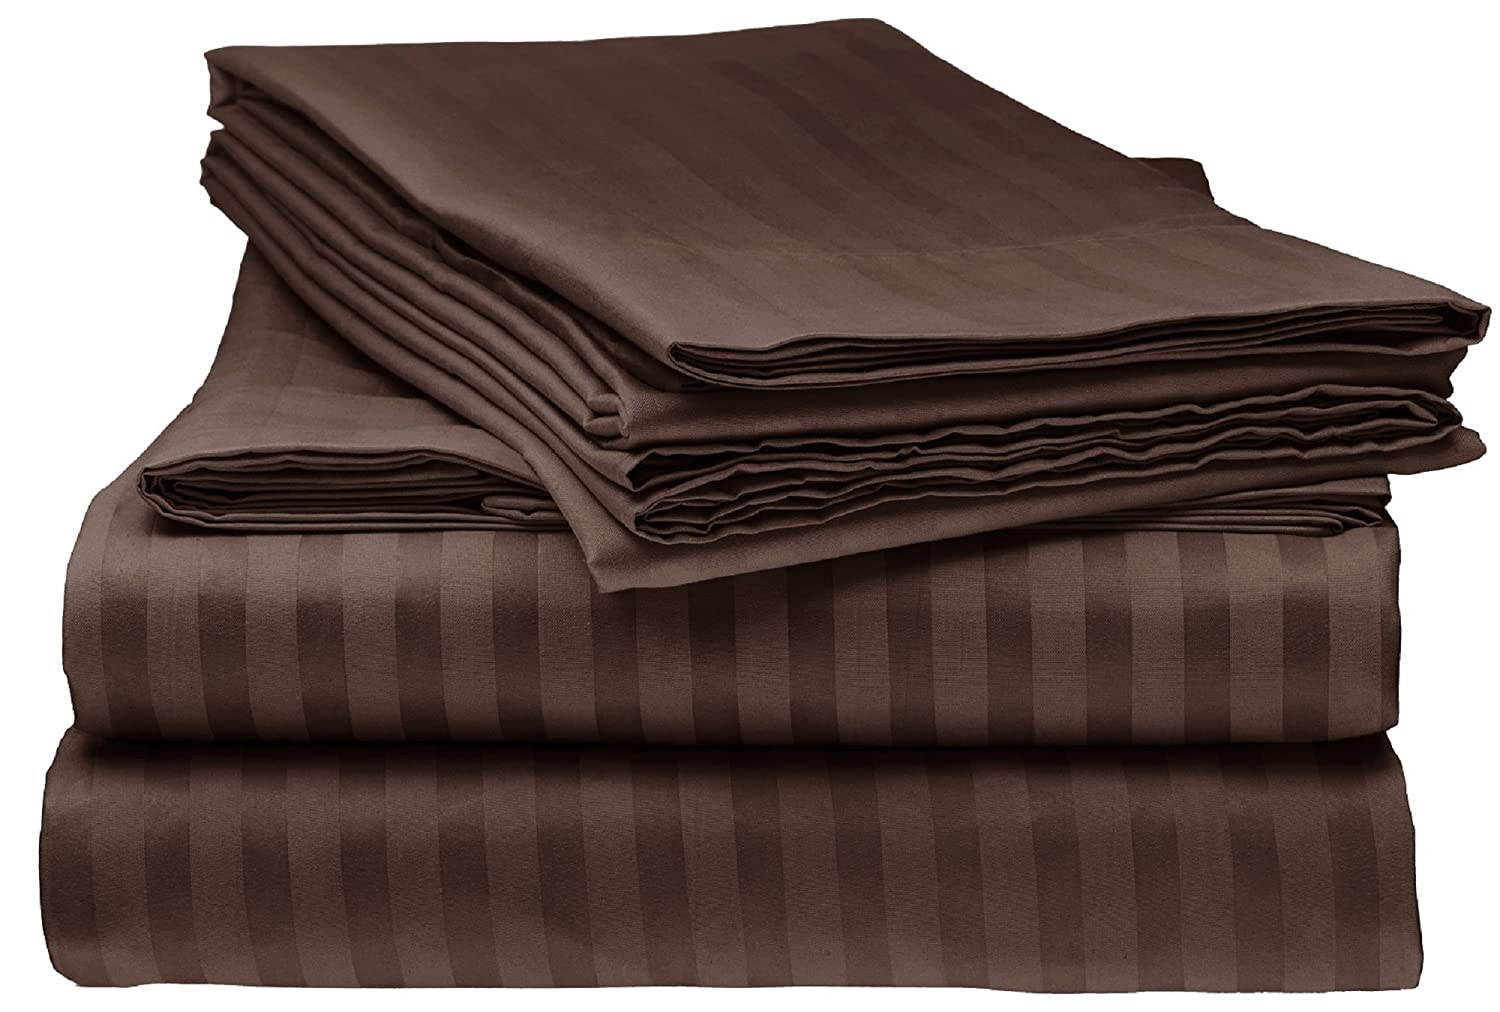 Bella kline Bedding 1800 Series 4 pc Bed Sheet Set with Pillowcases Hypoallergenic, 1 Soft Silky Luxurious Feel, Fitted and Flat Sheets Lifetime - Queen Size, Chocolate Brown